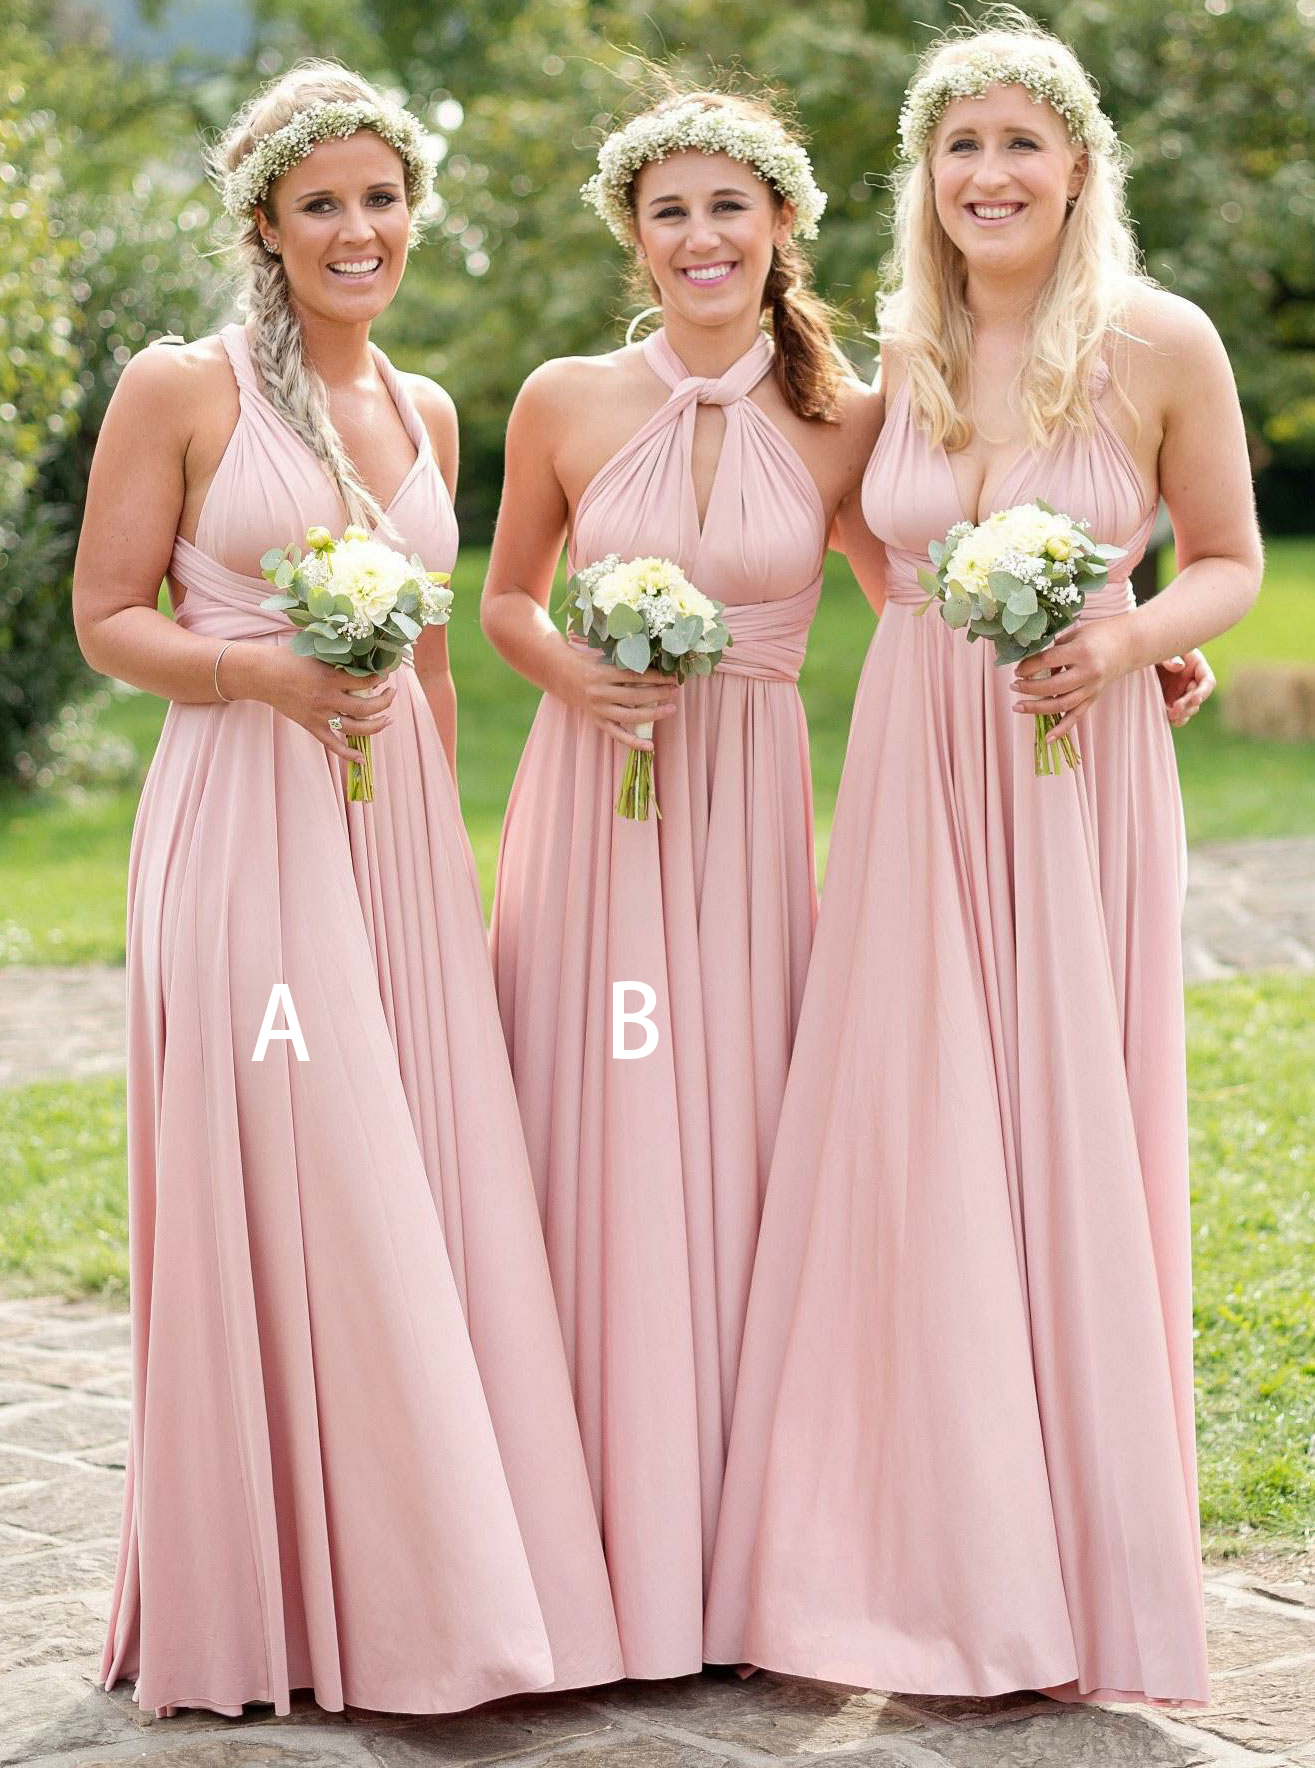 A-Line V-Neck Floor Length Pleated Pink Satin Bridesmaid Dress фото